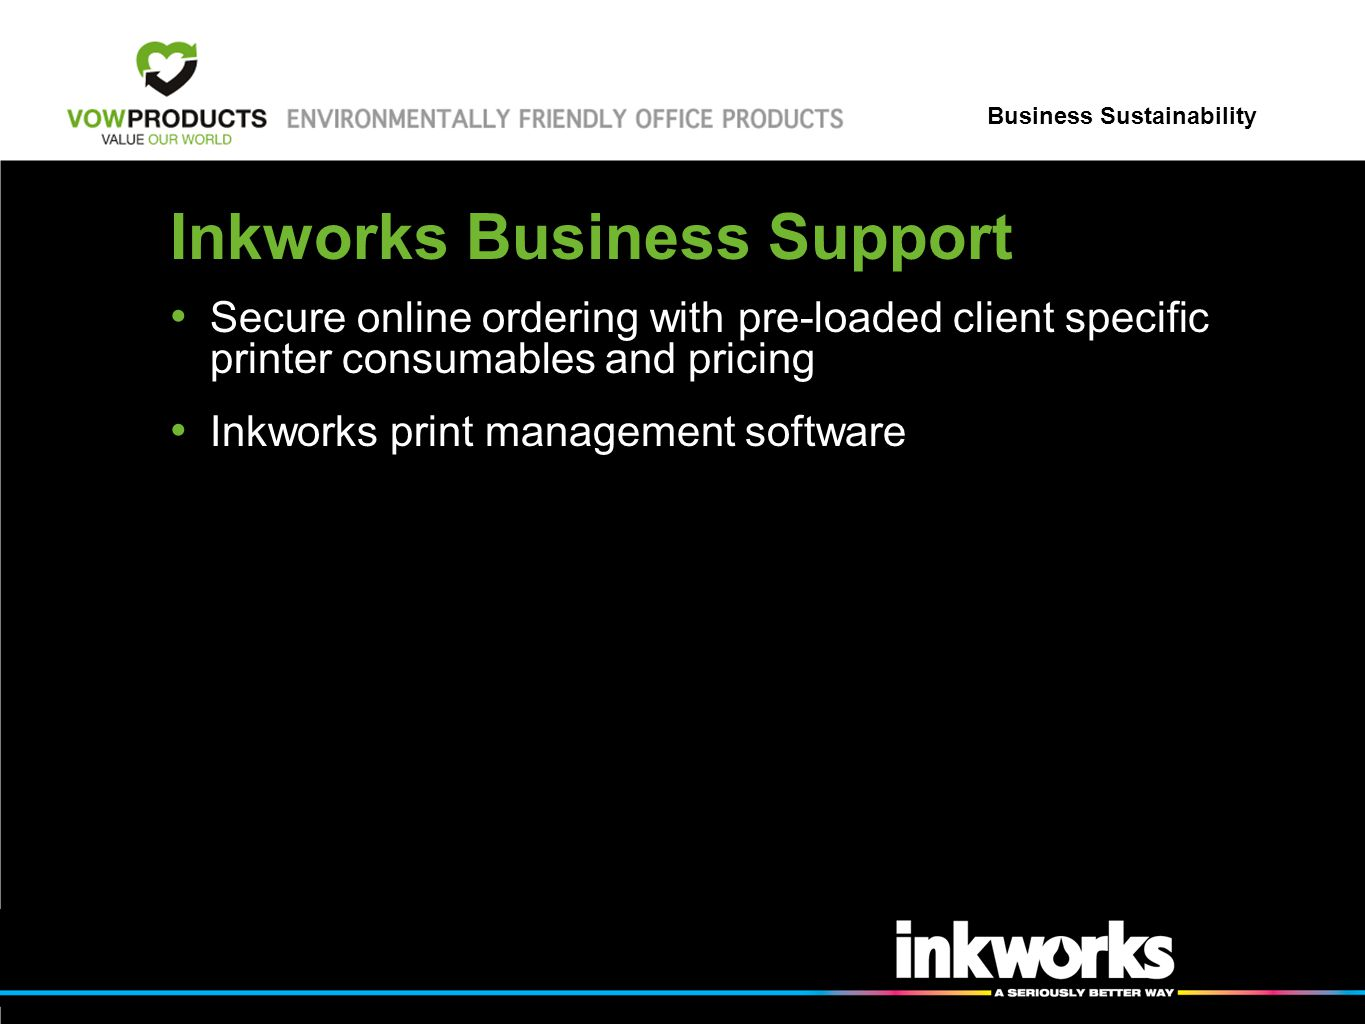 Business Sustainability Inkworks Business Support Secure online ordering with pre-loaded client specific printer consumables and pricing Inkworks print management software